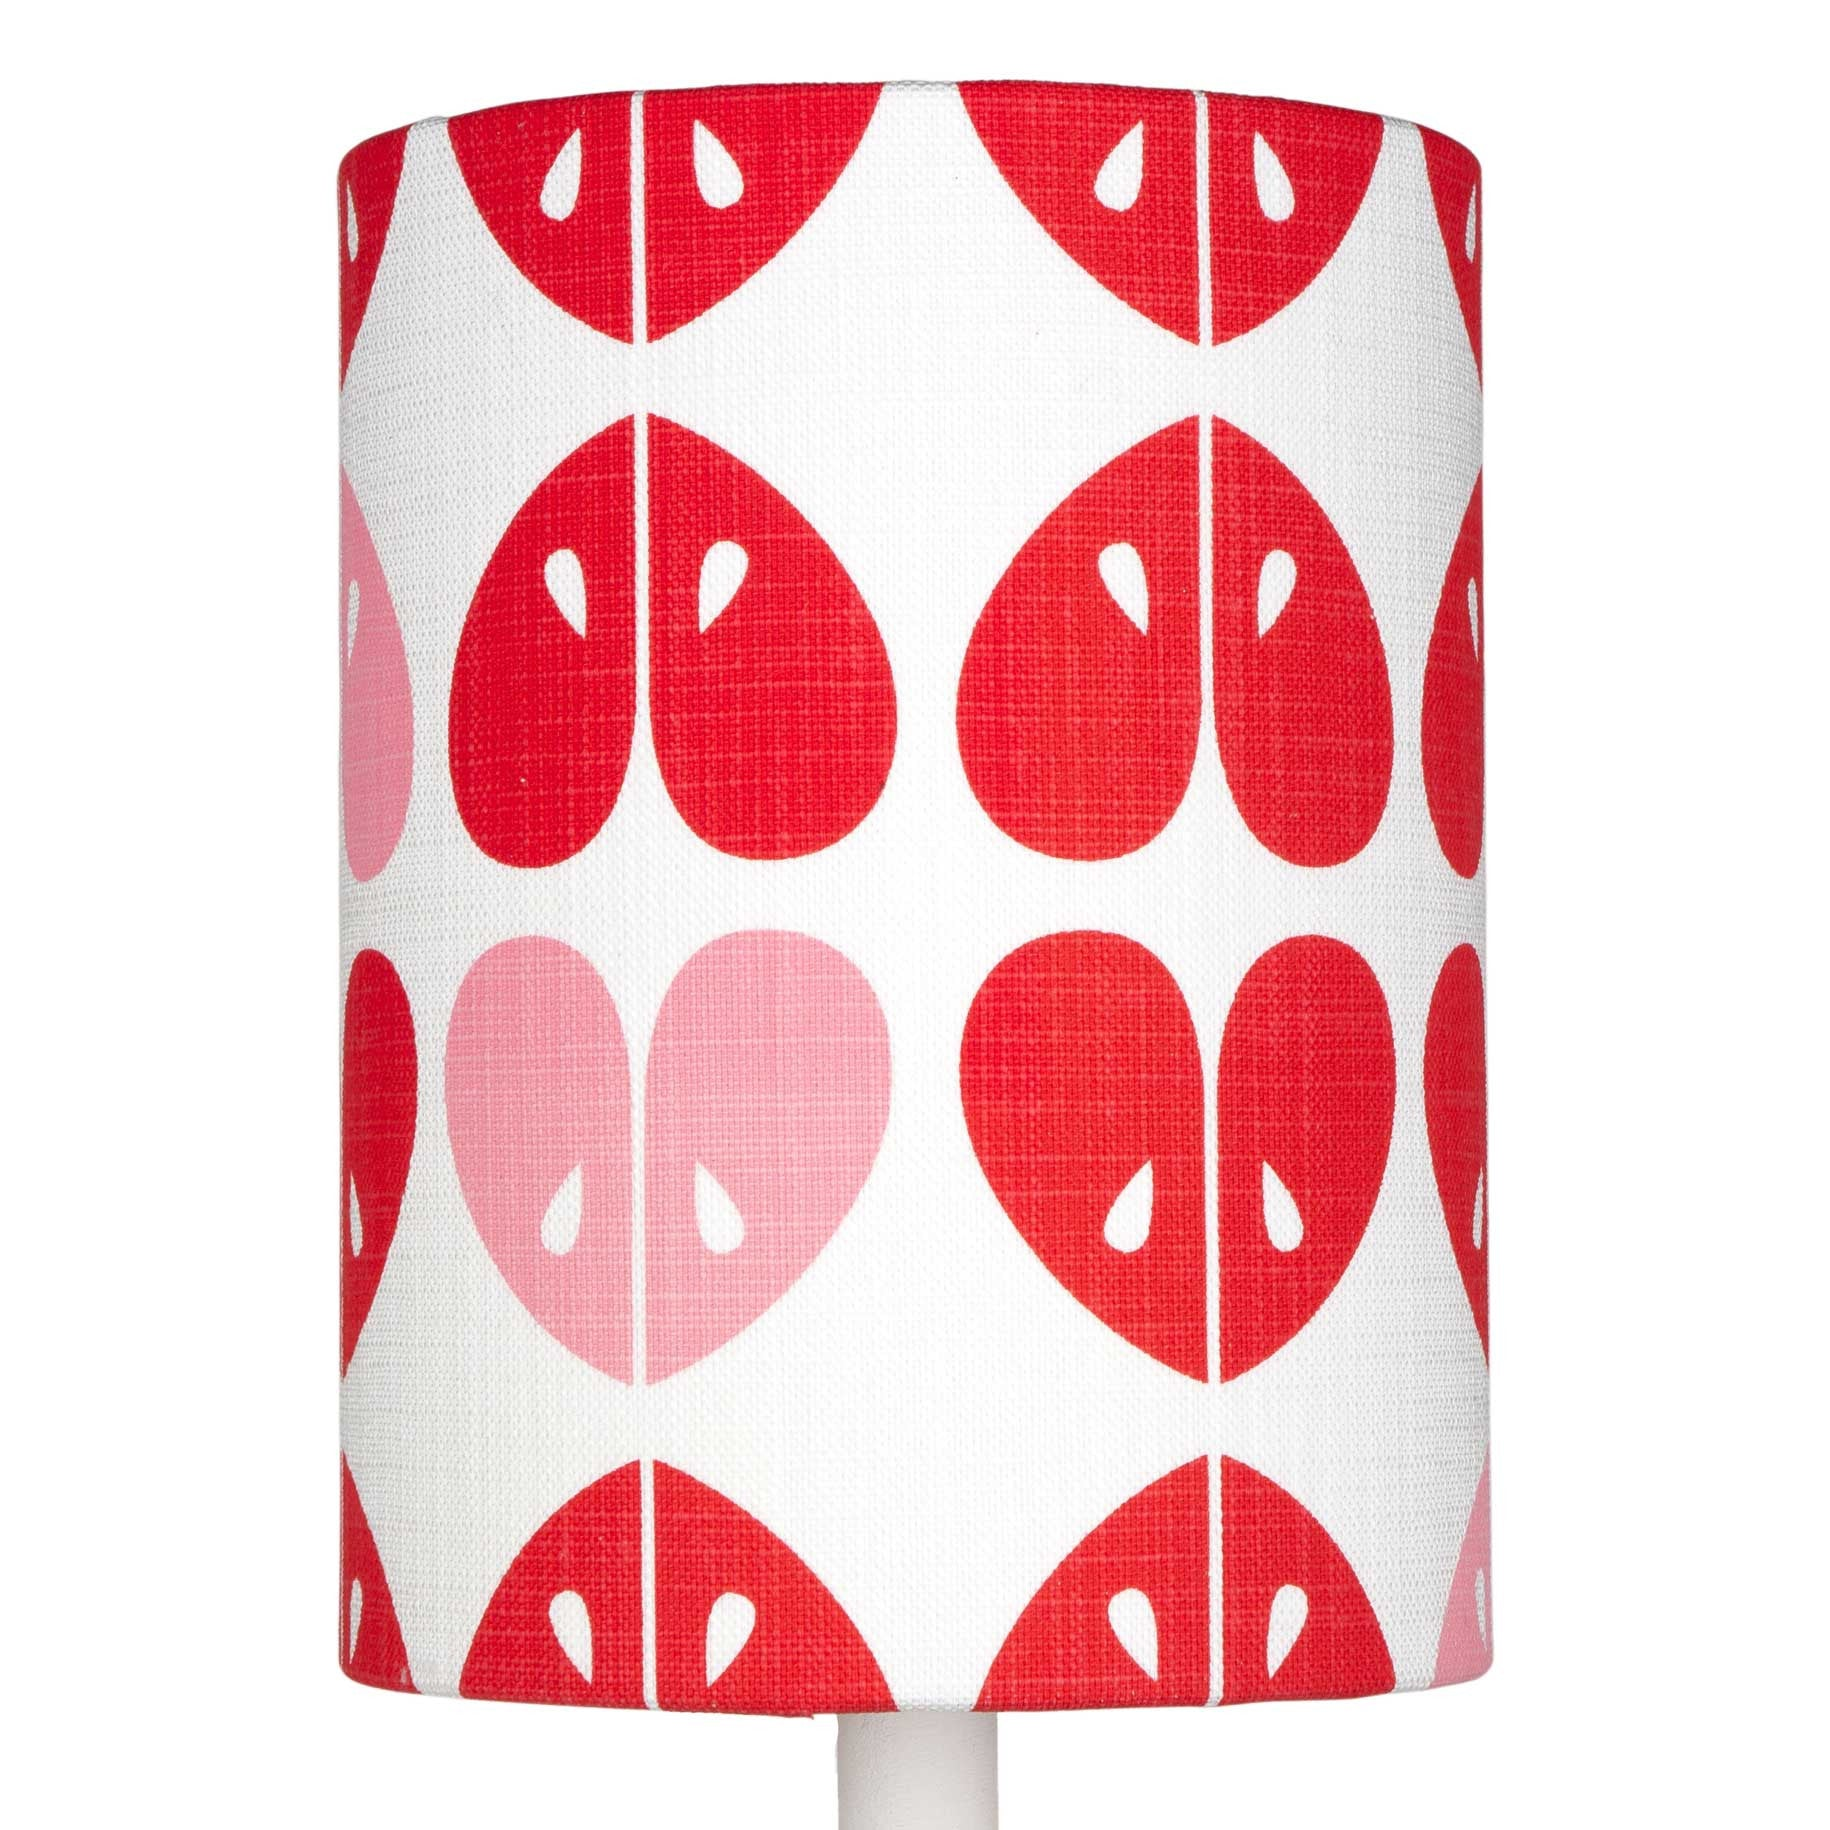 Apples table lampshade